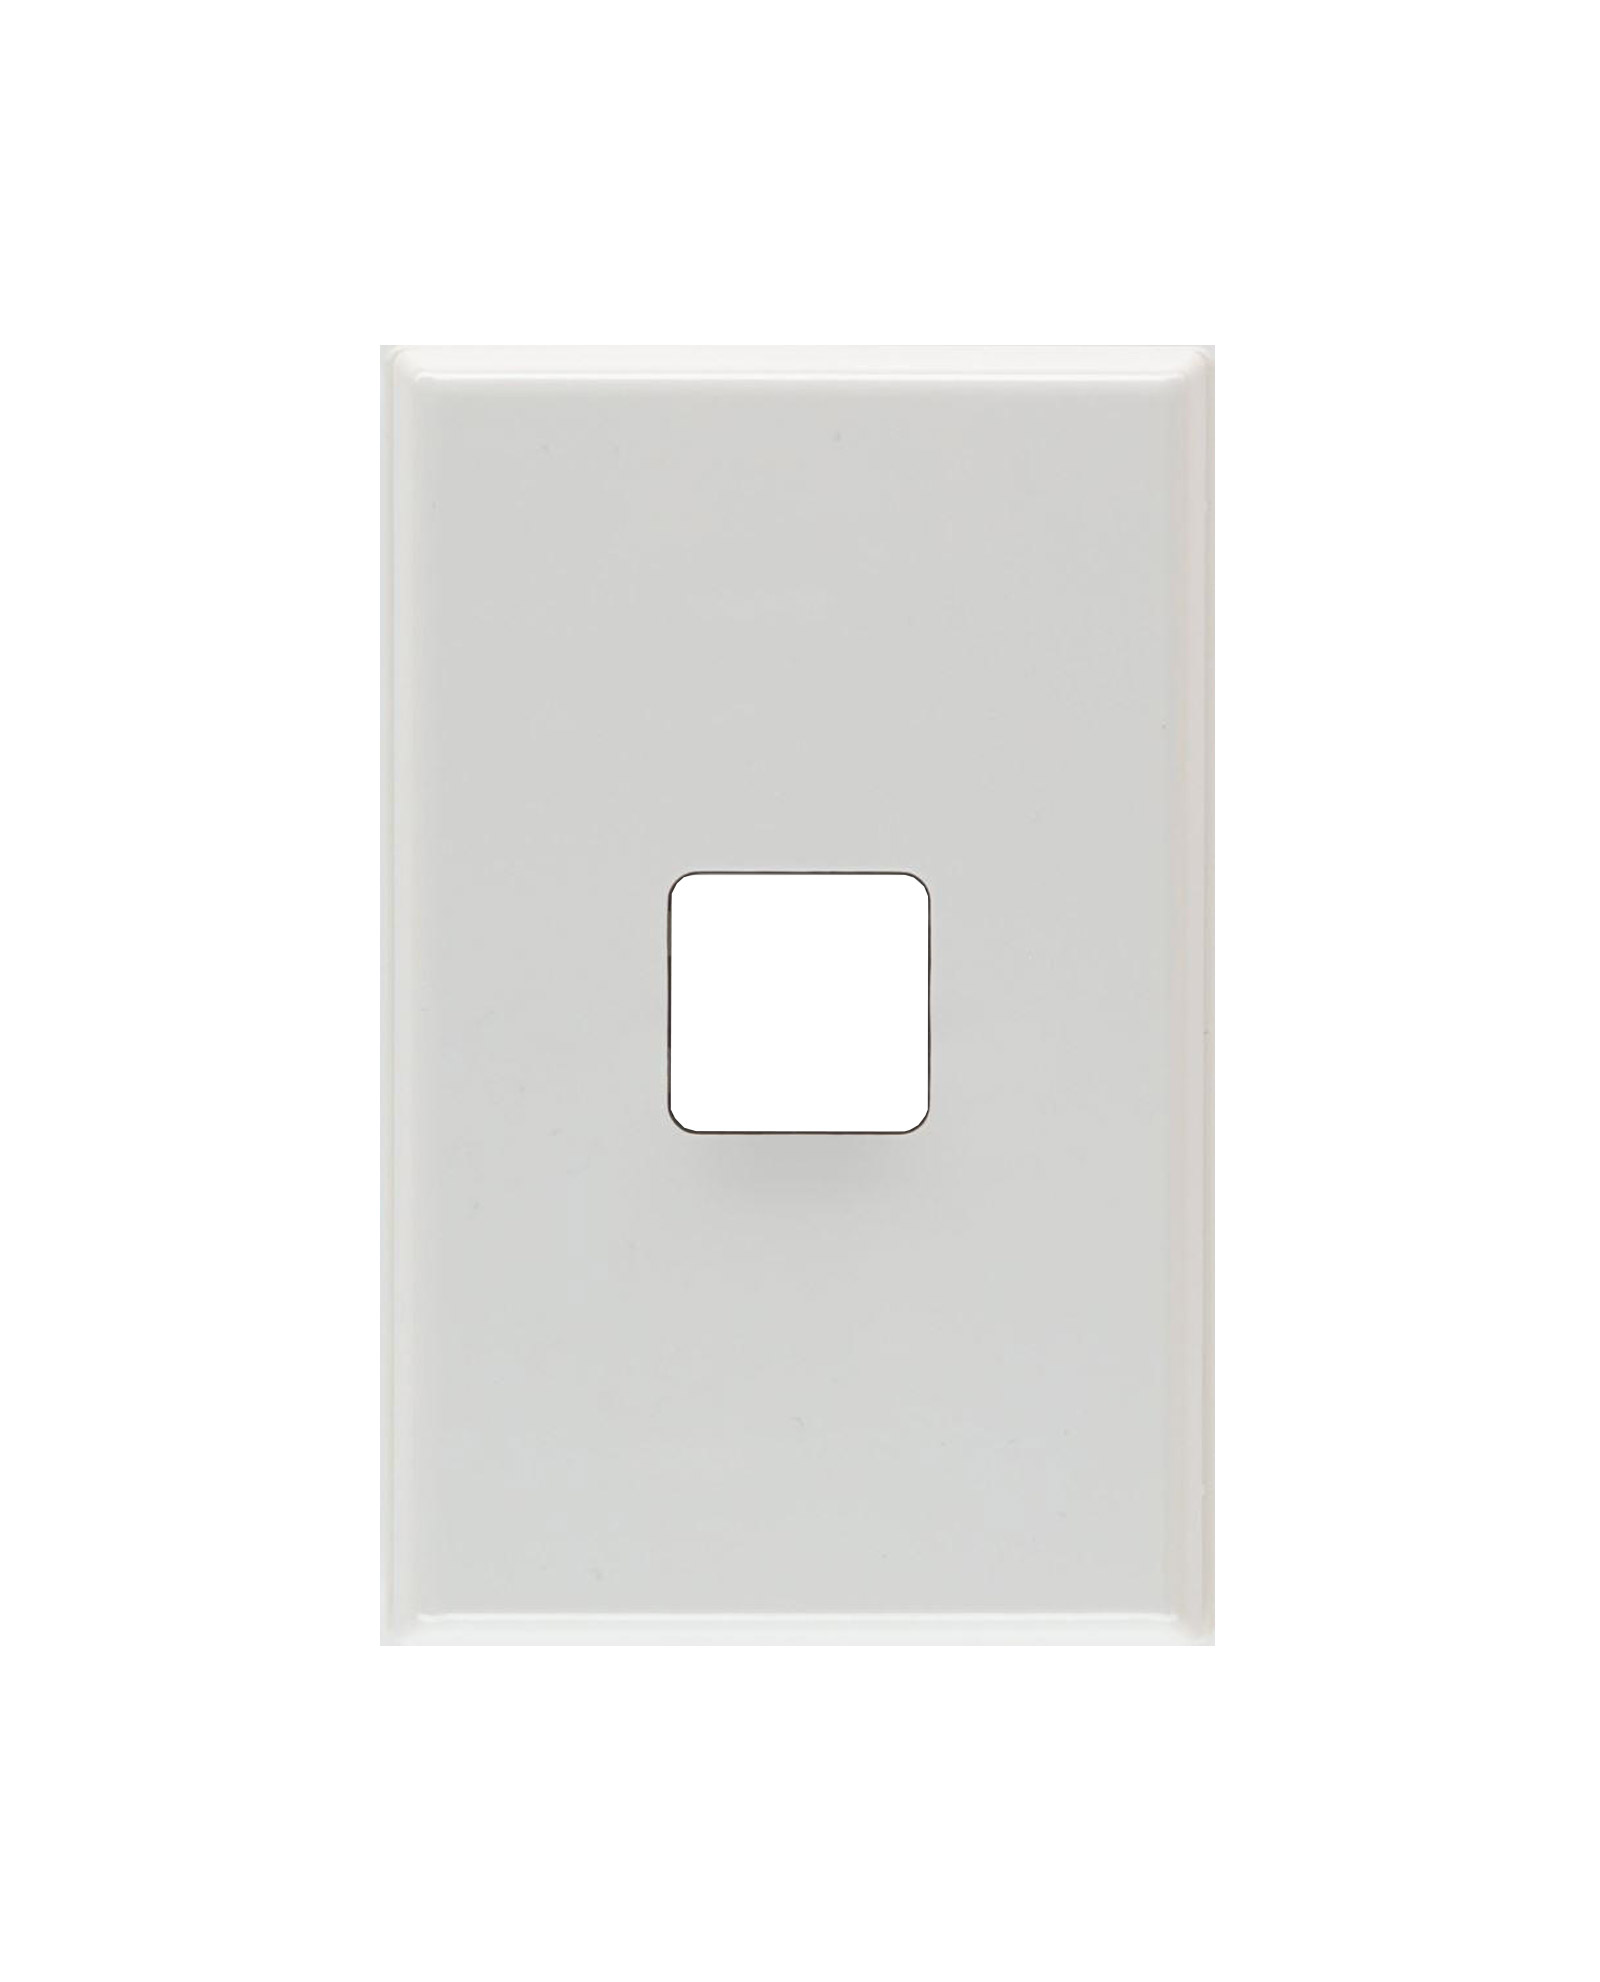 Pdl 600 Series 681vh Single Vertical Cover Plate